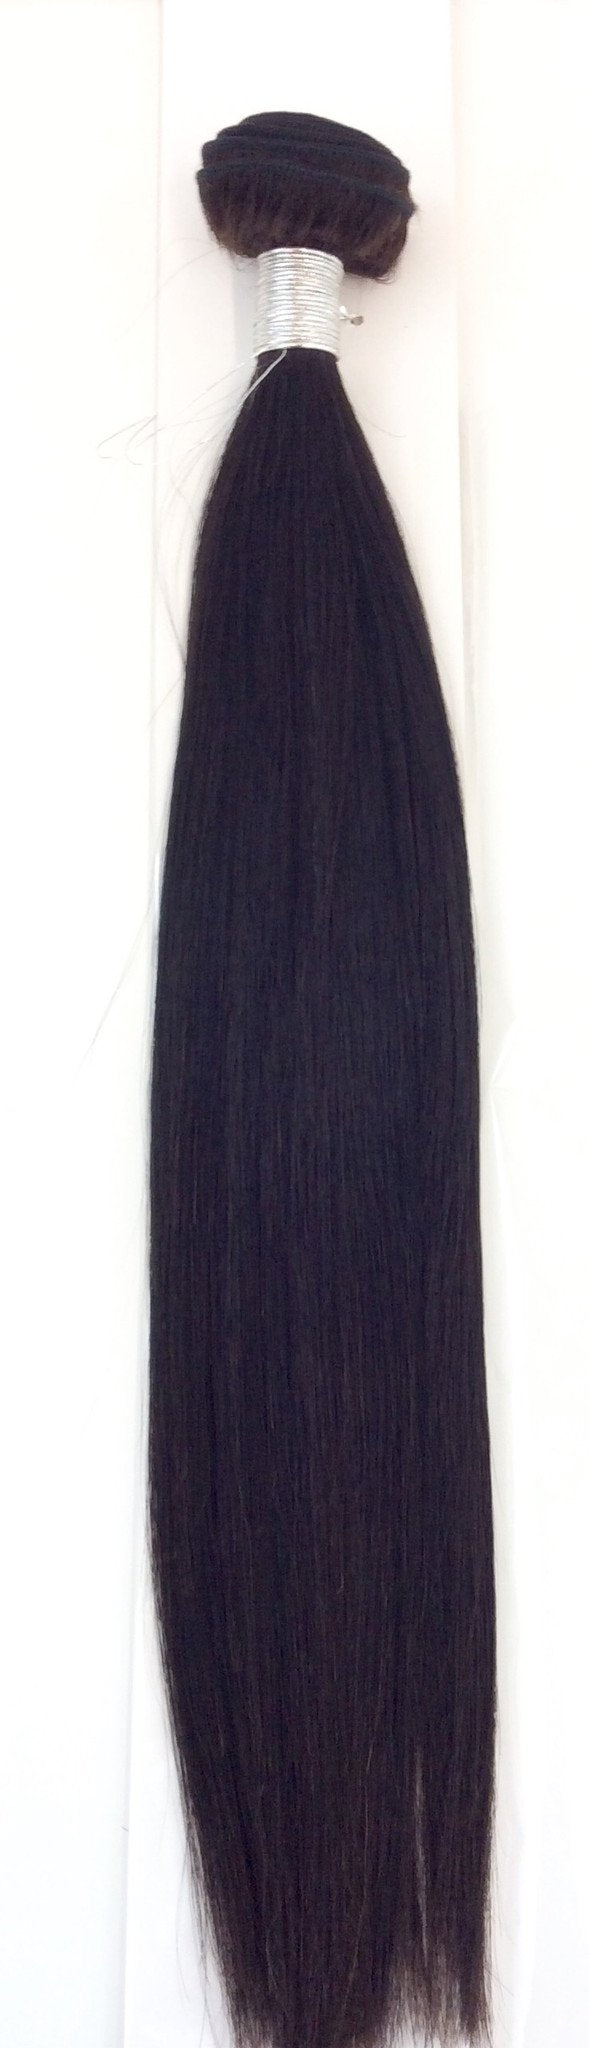 "16"" 100% Premium Virgin Peruvian Remy #Natural"